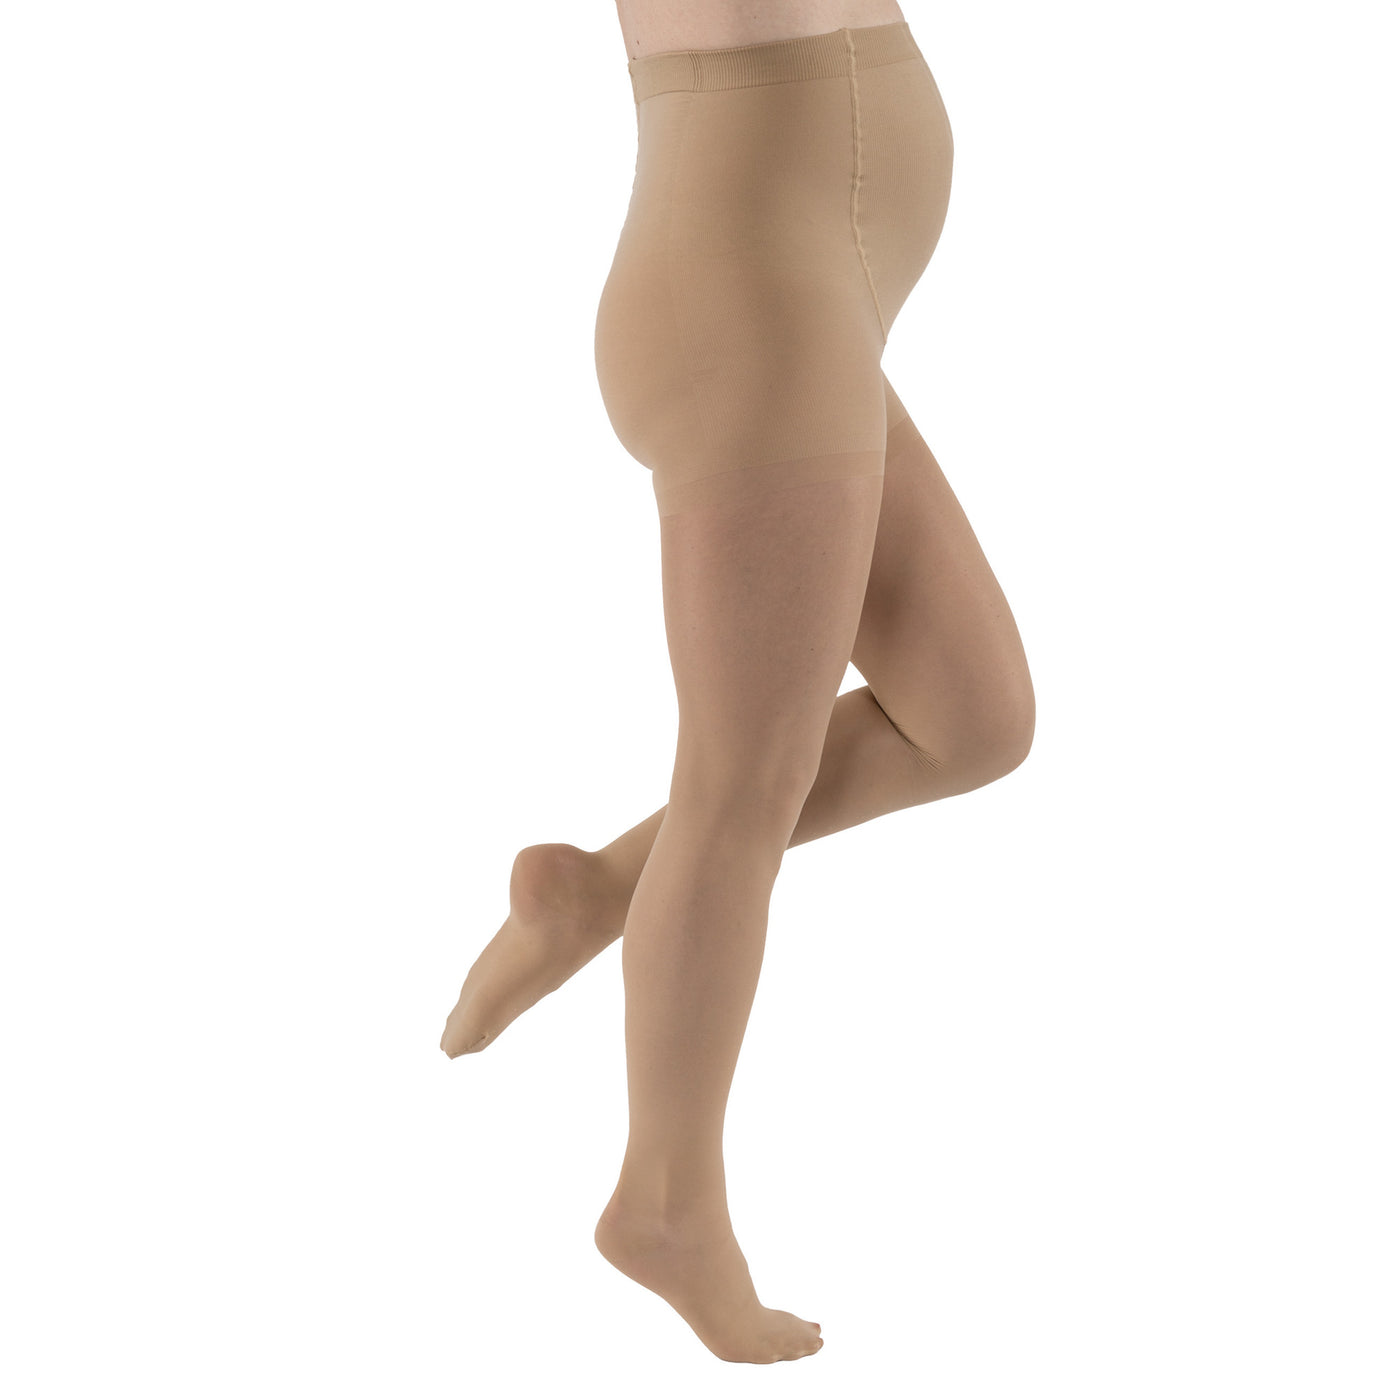 250cd4c94 Jobst UltraSheer Maternity Compression Pantyhose 15-20mmHg — BrightLife  Direct